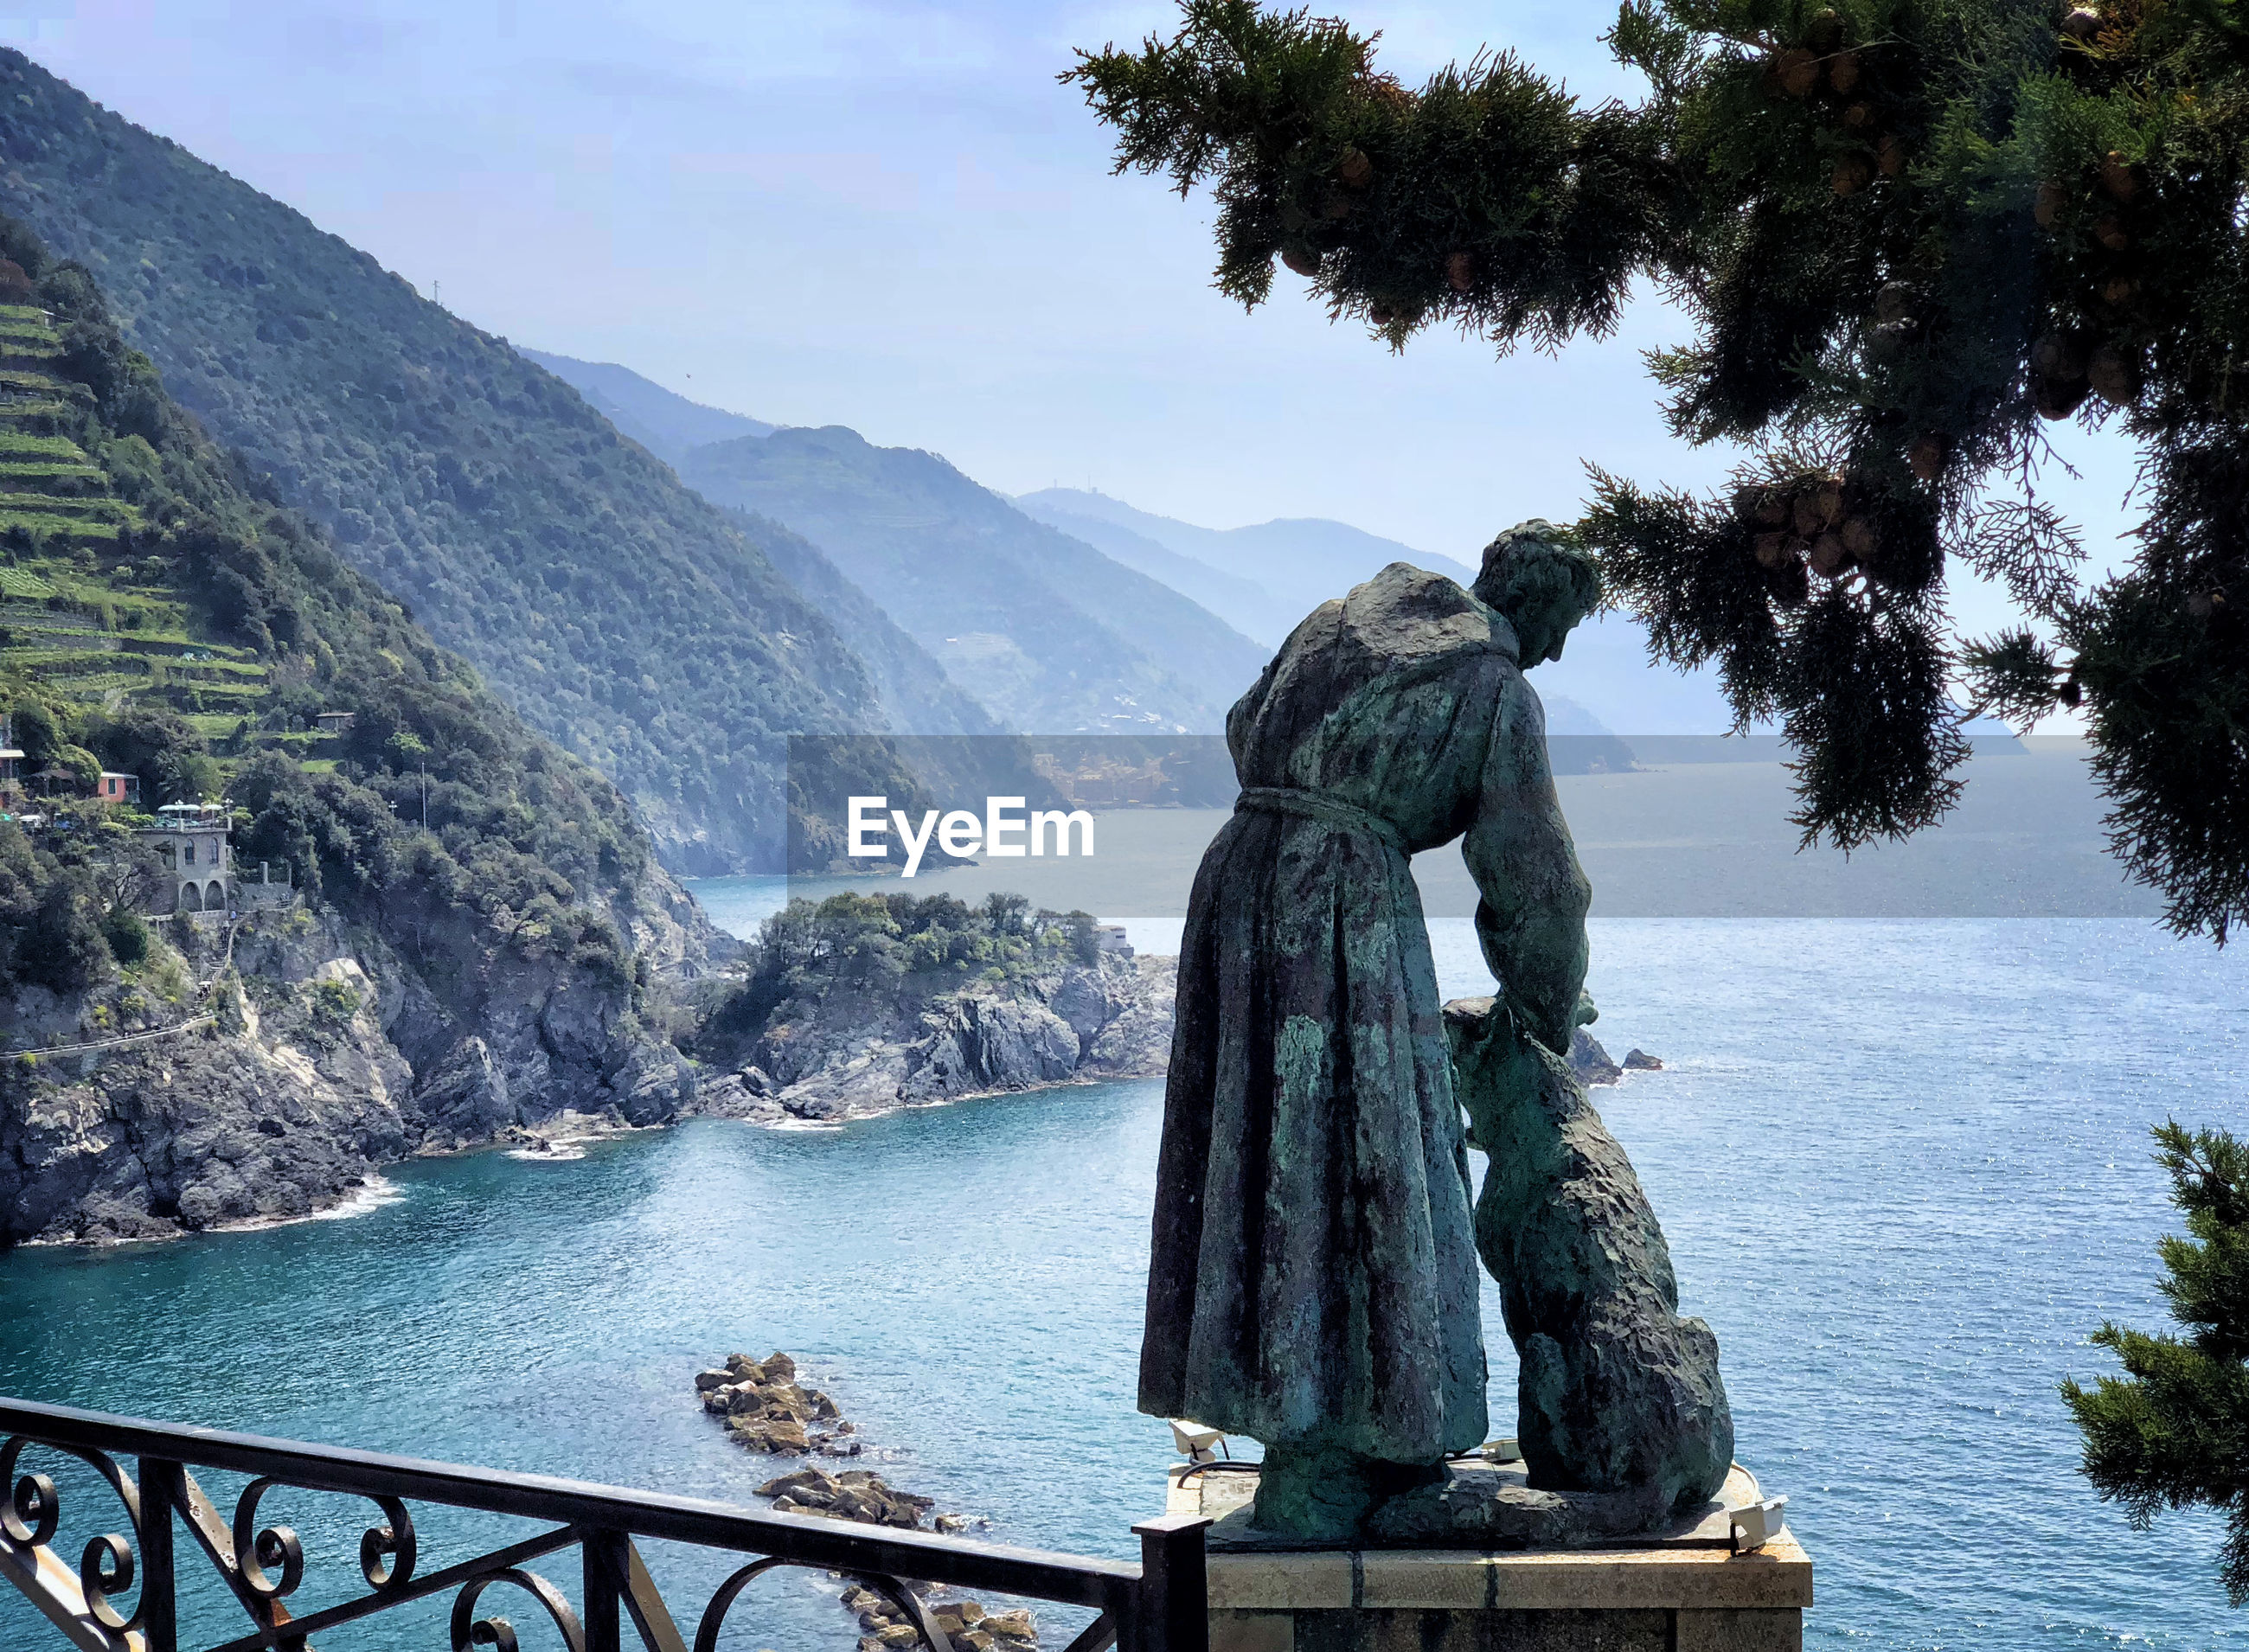 STATUE BY SEA AGAINST MOUNTAINS